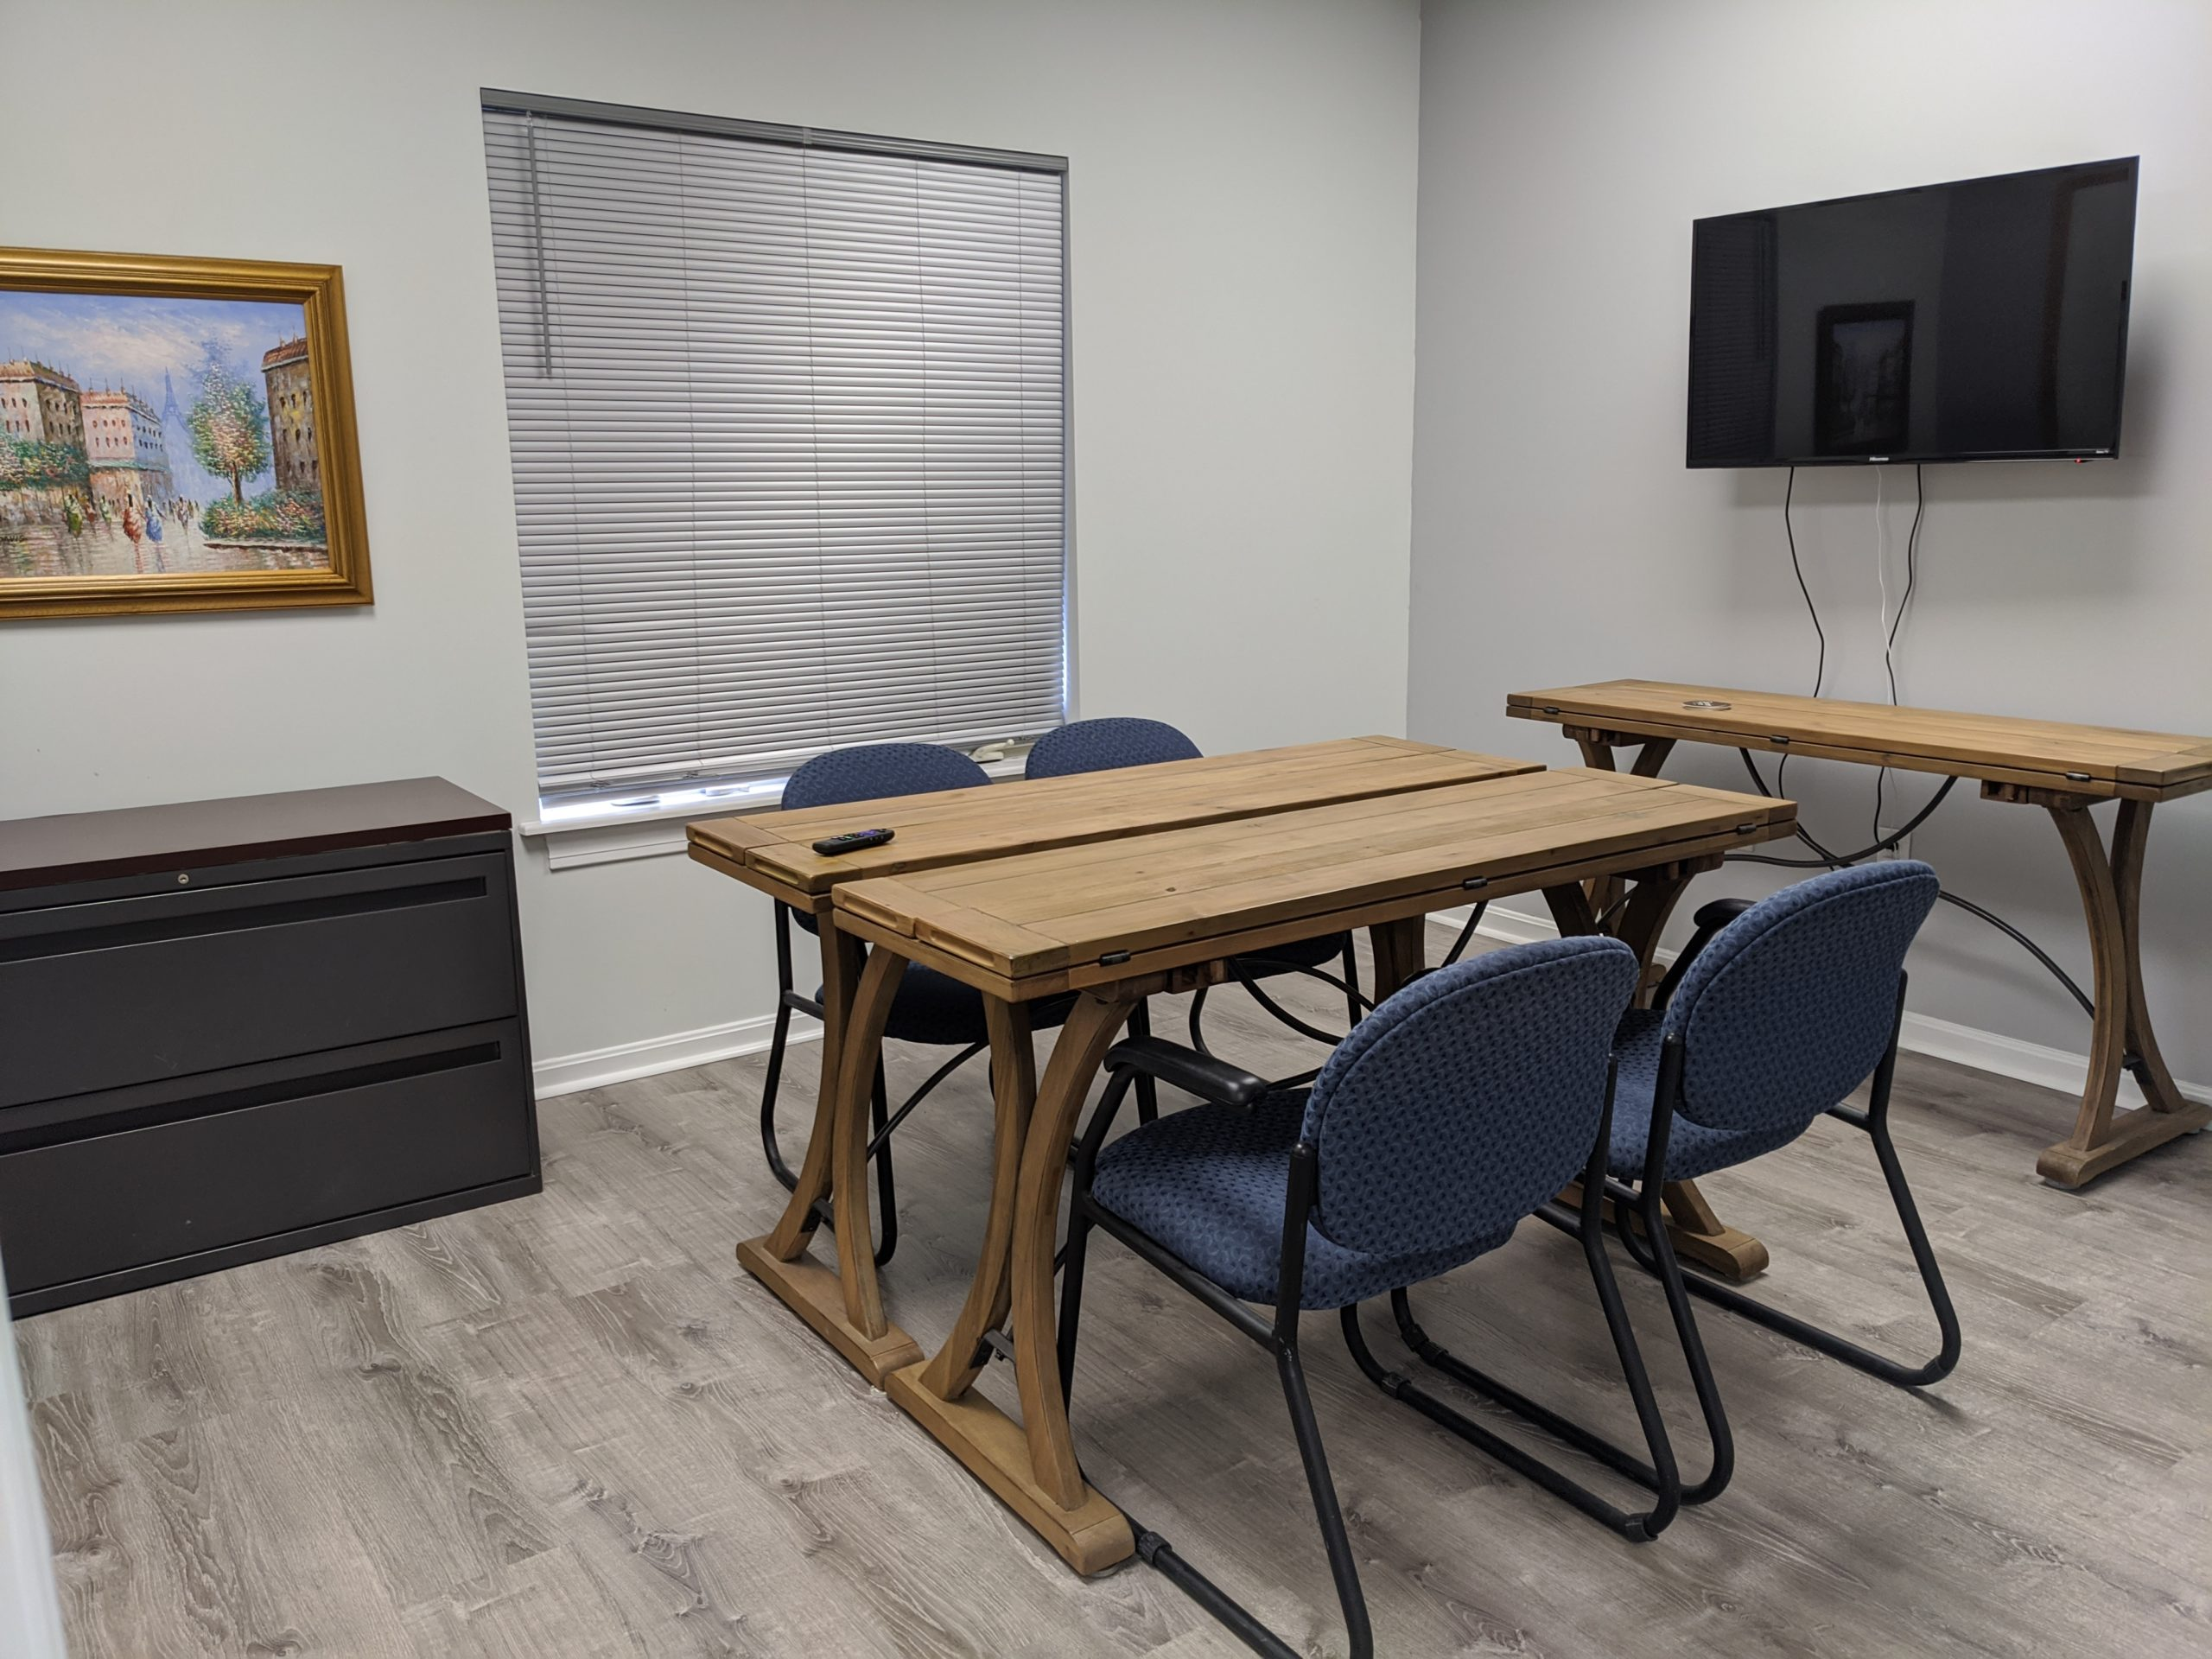 Table with Four Chairs and TV Monitor